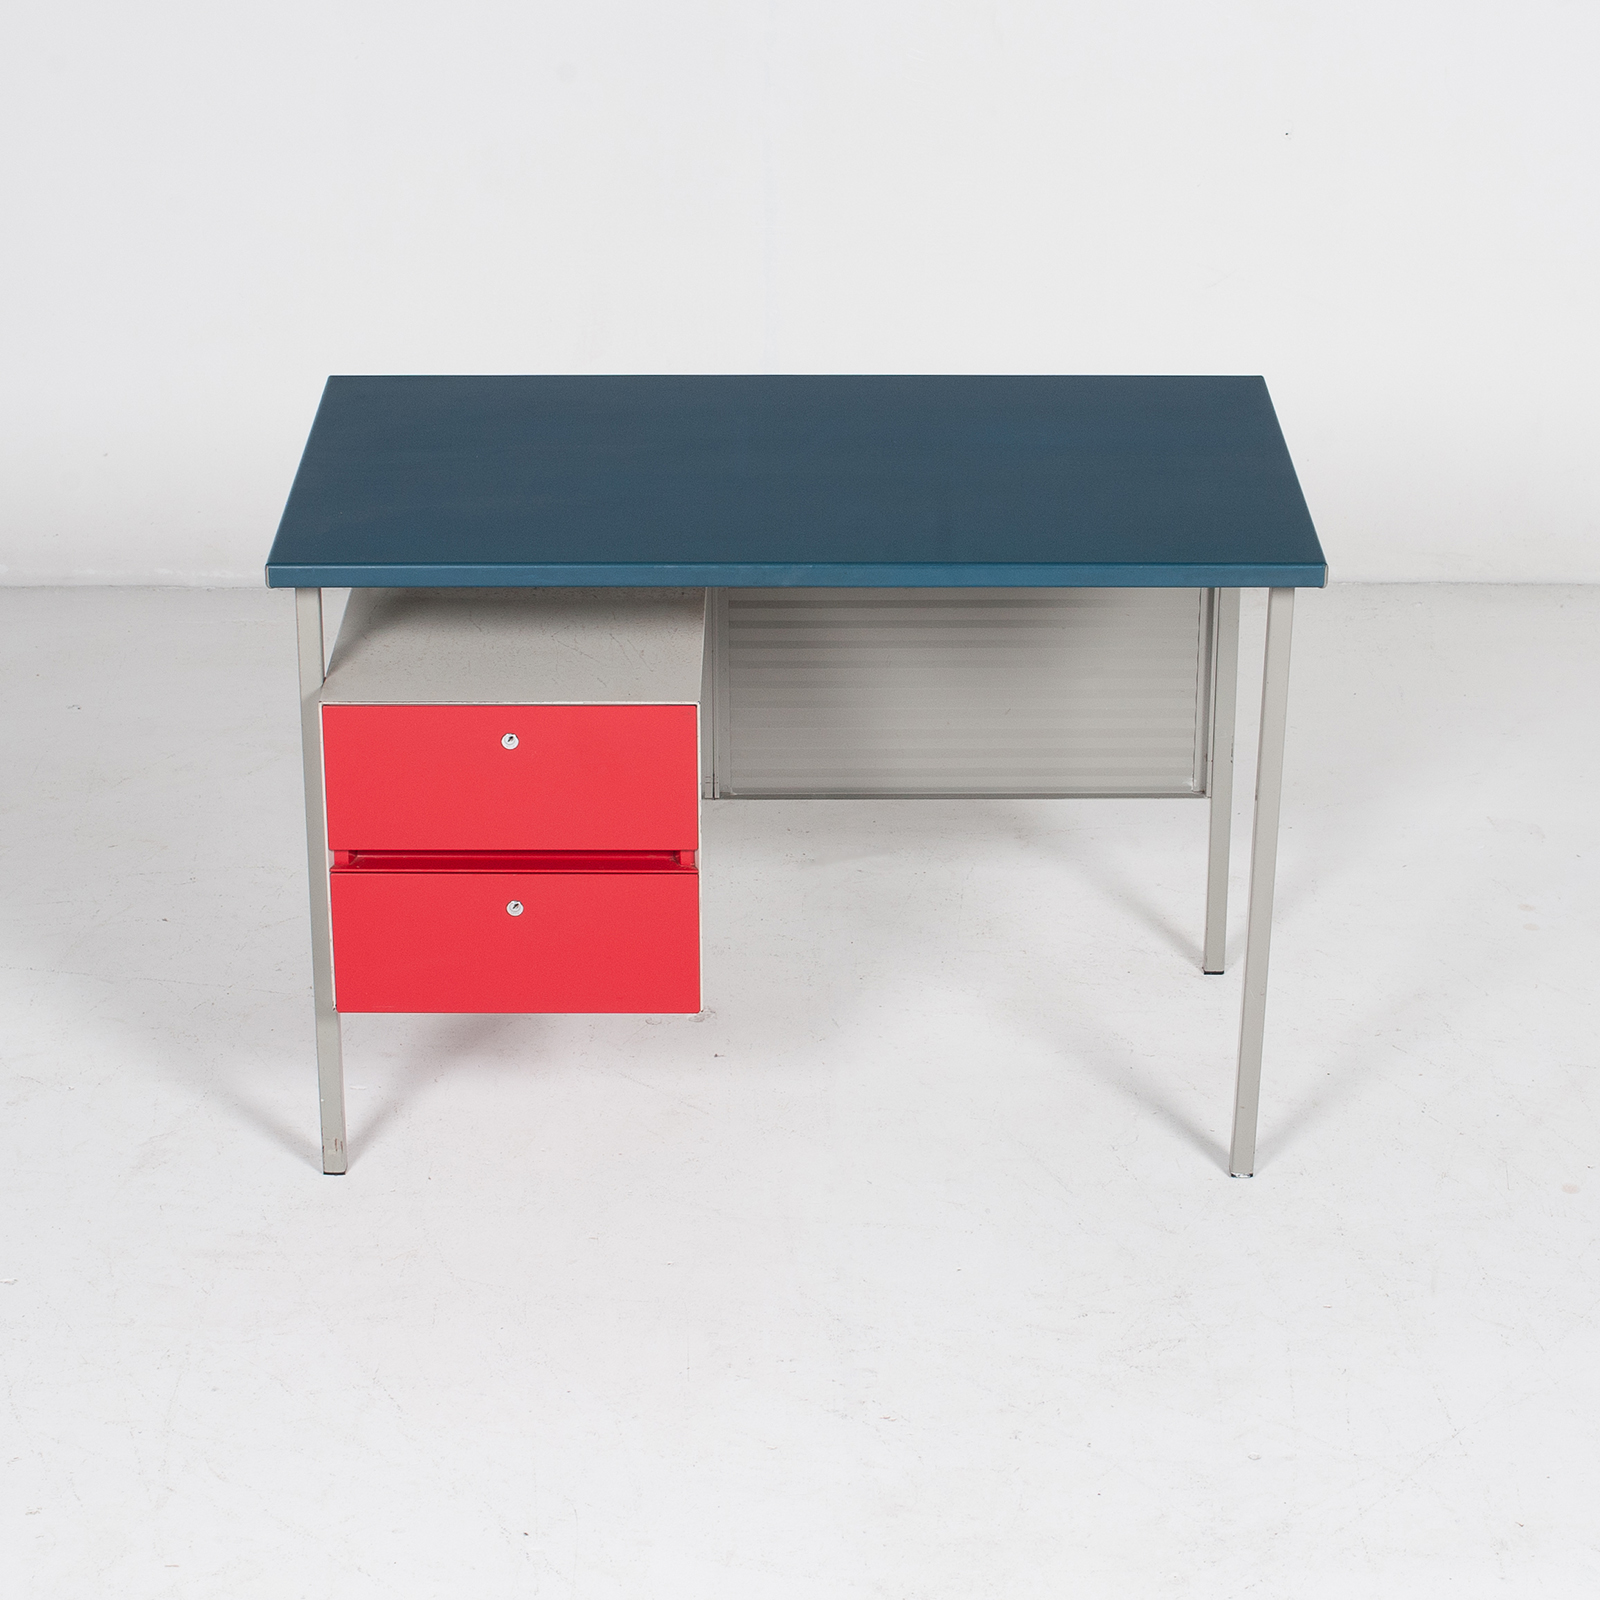 3803 Industrial Desk By Andre Cordemeyer For Gispen With Blue Vinyl Top And Red Enamelled Drawers, 1950s, The Netherlands 46